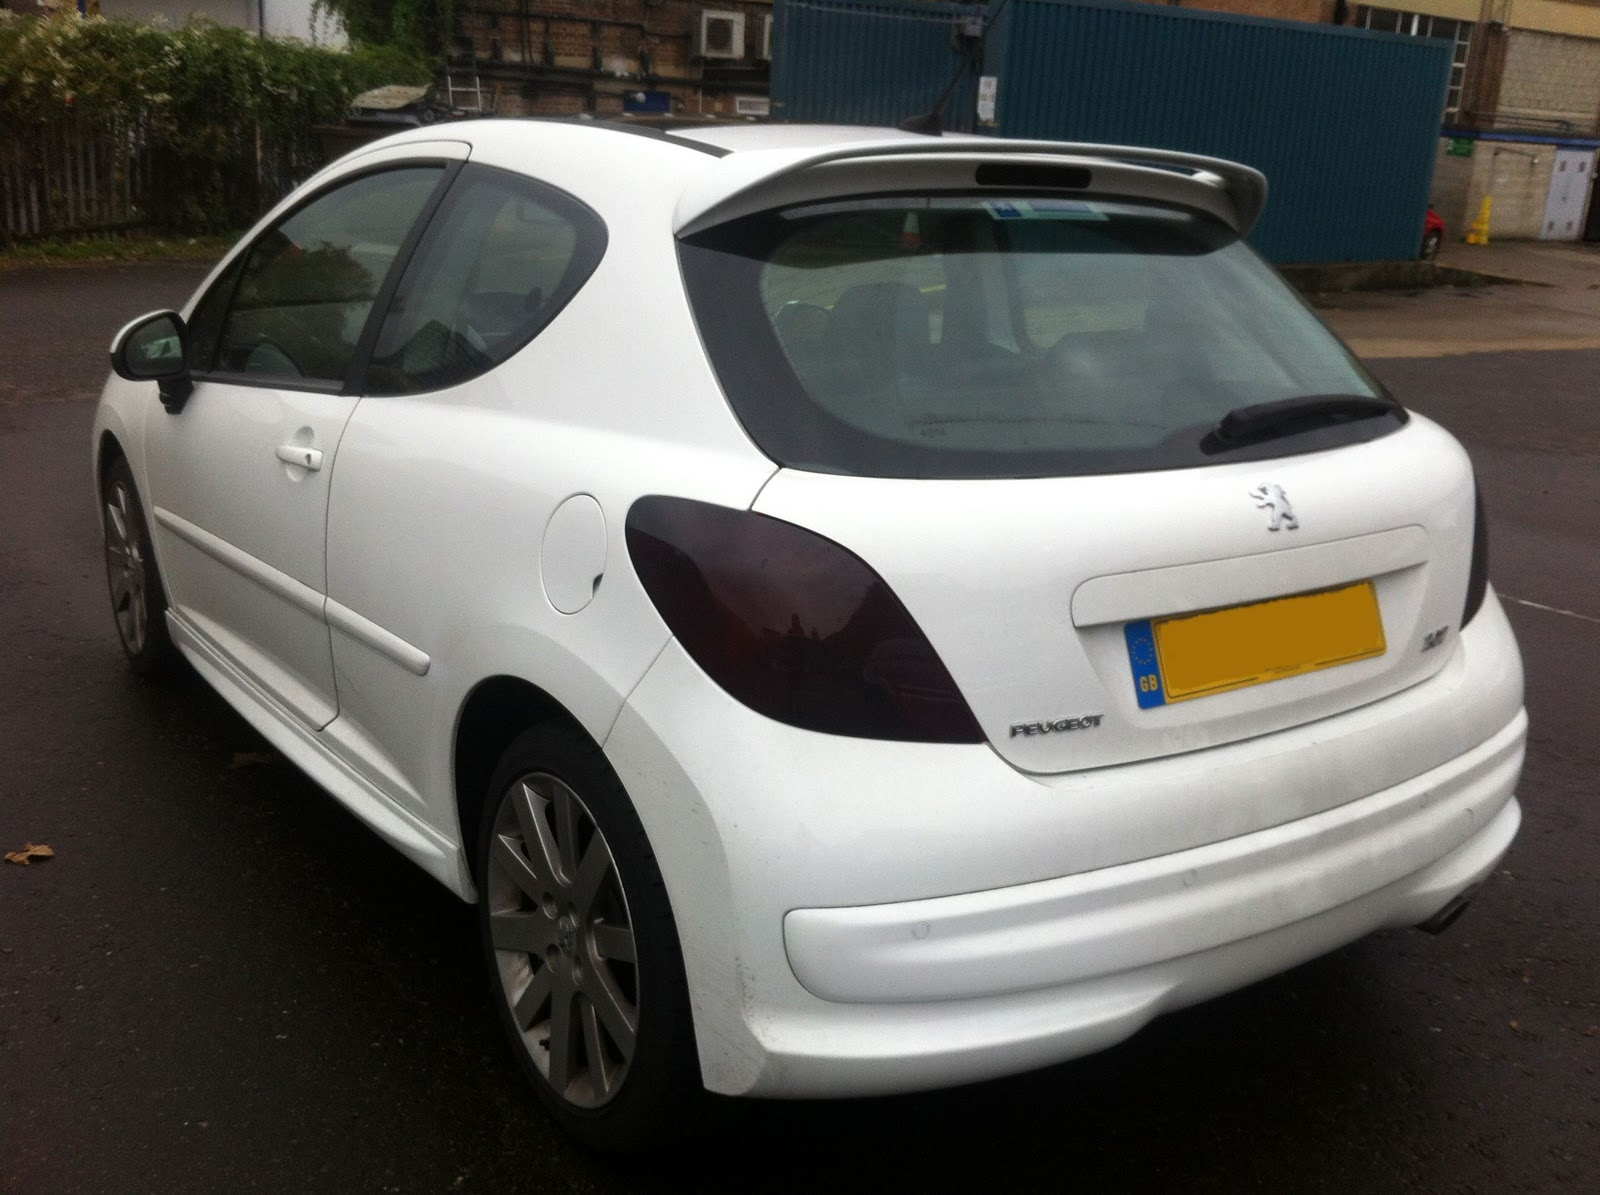 Peugeot 207 Gt Amp Gti 1 6 Thp 150bhp Jf Automotive Engine